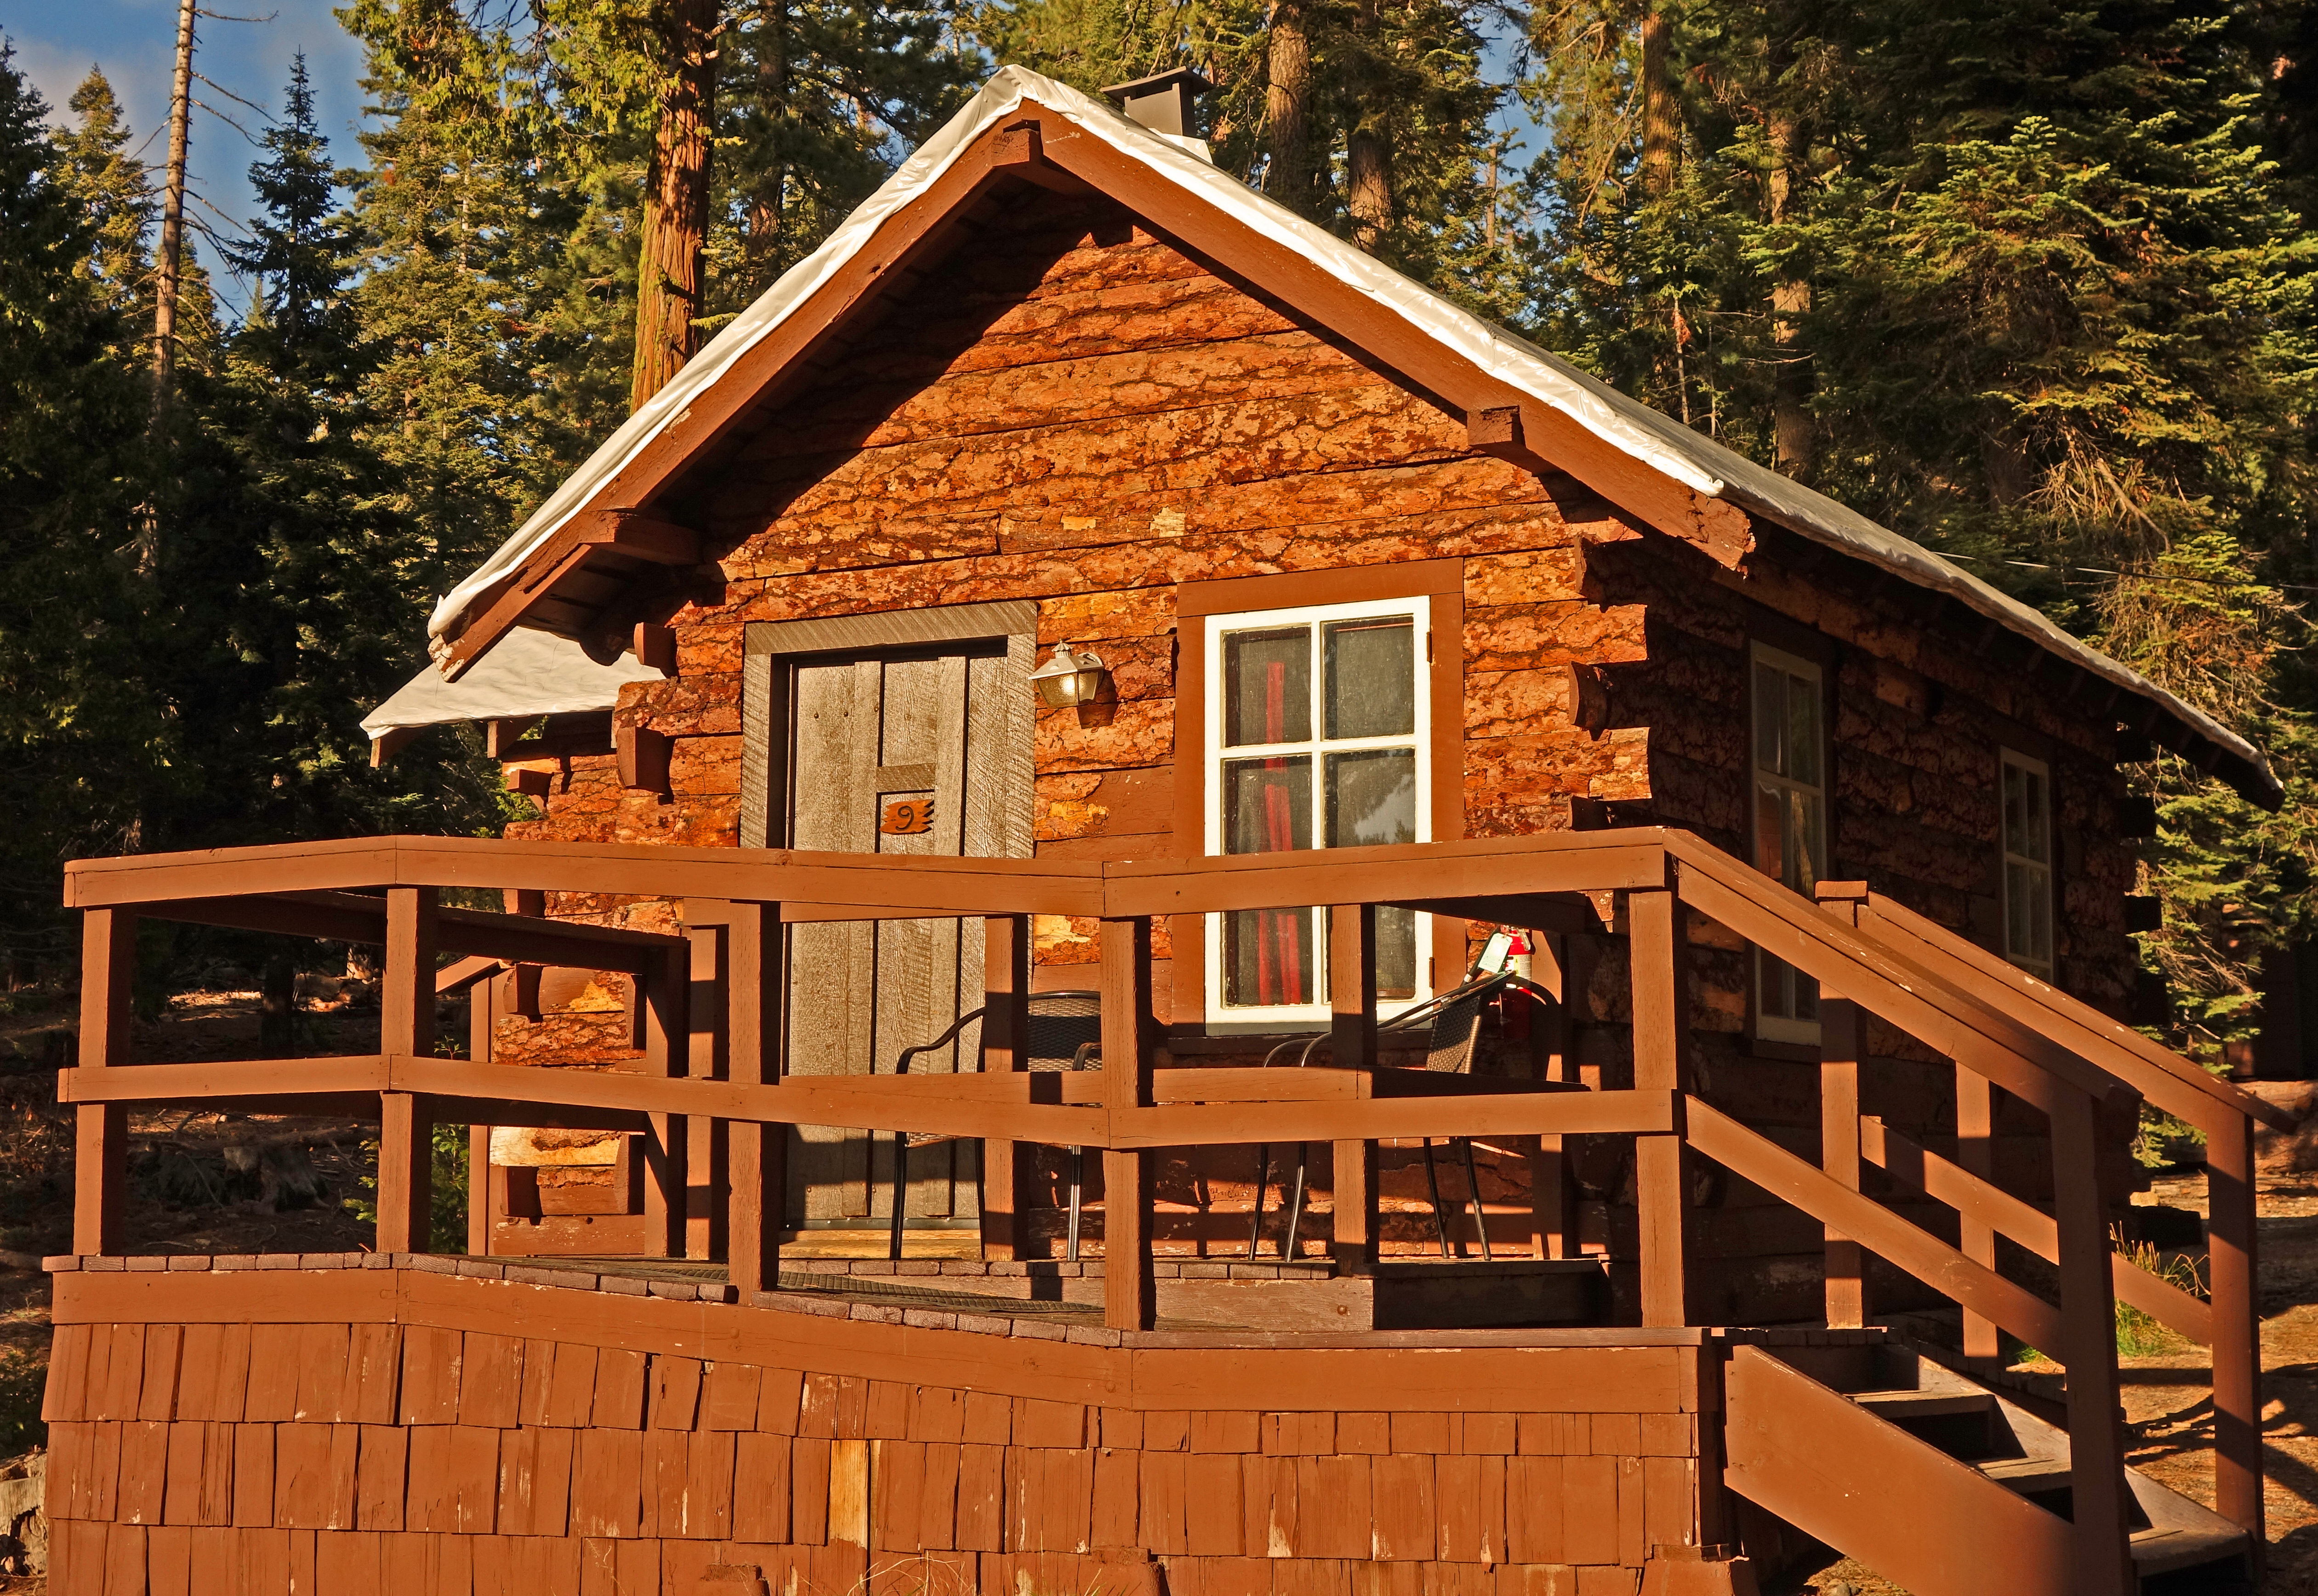 national file wikimedia commons forest s sequoia squatter park cabin wiki in cabins